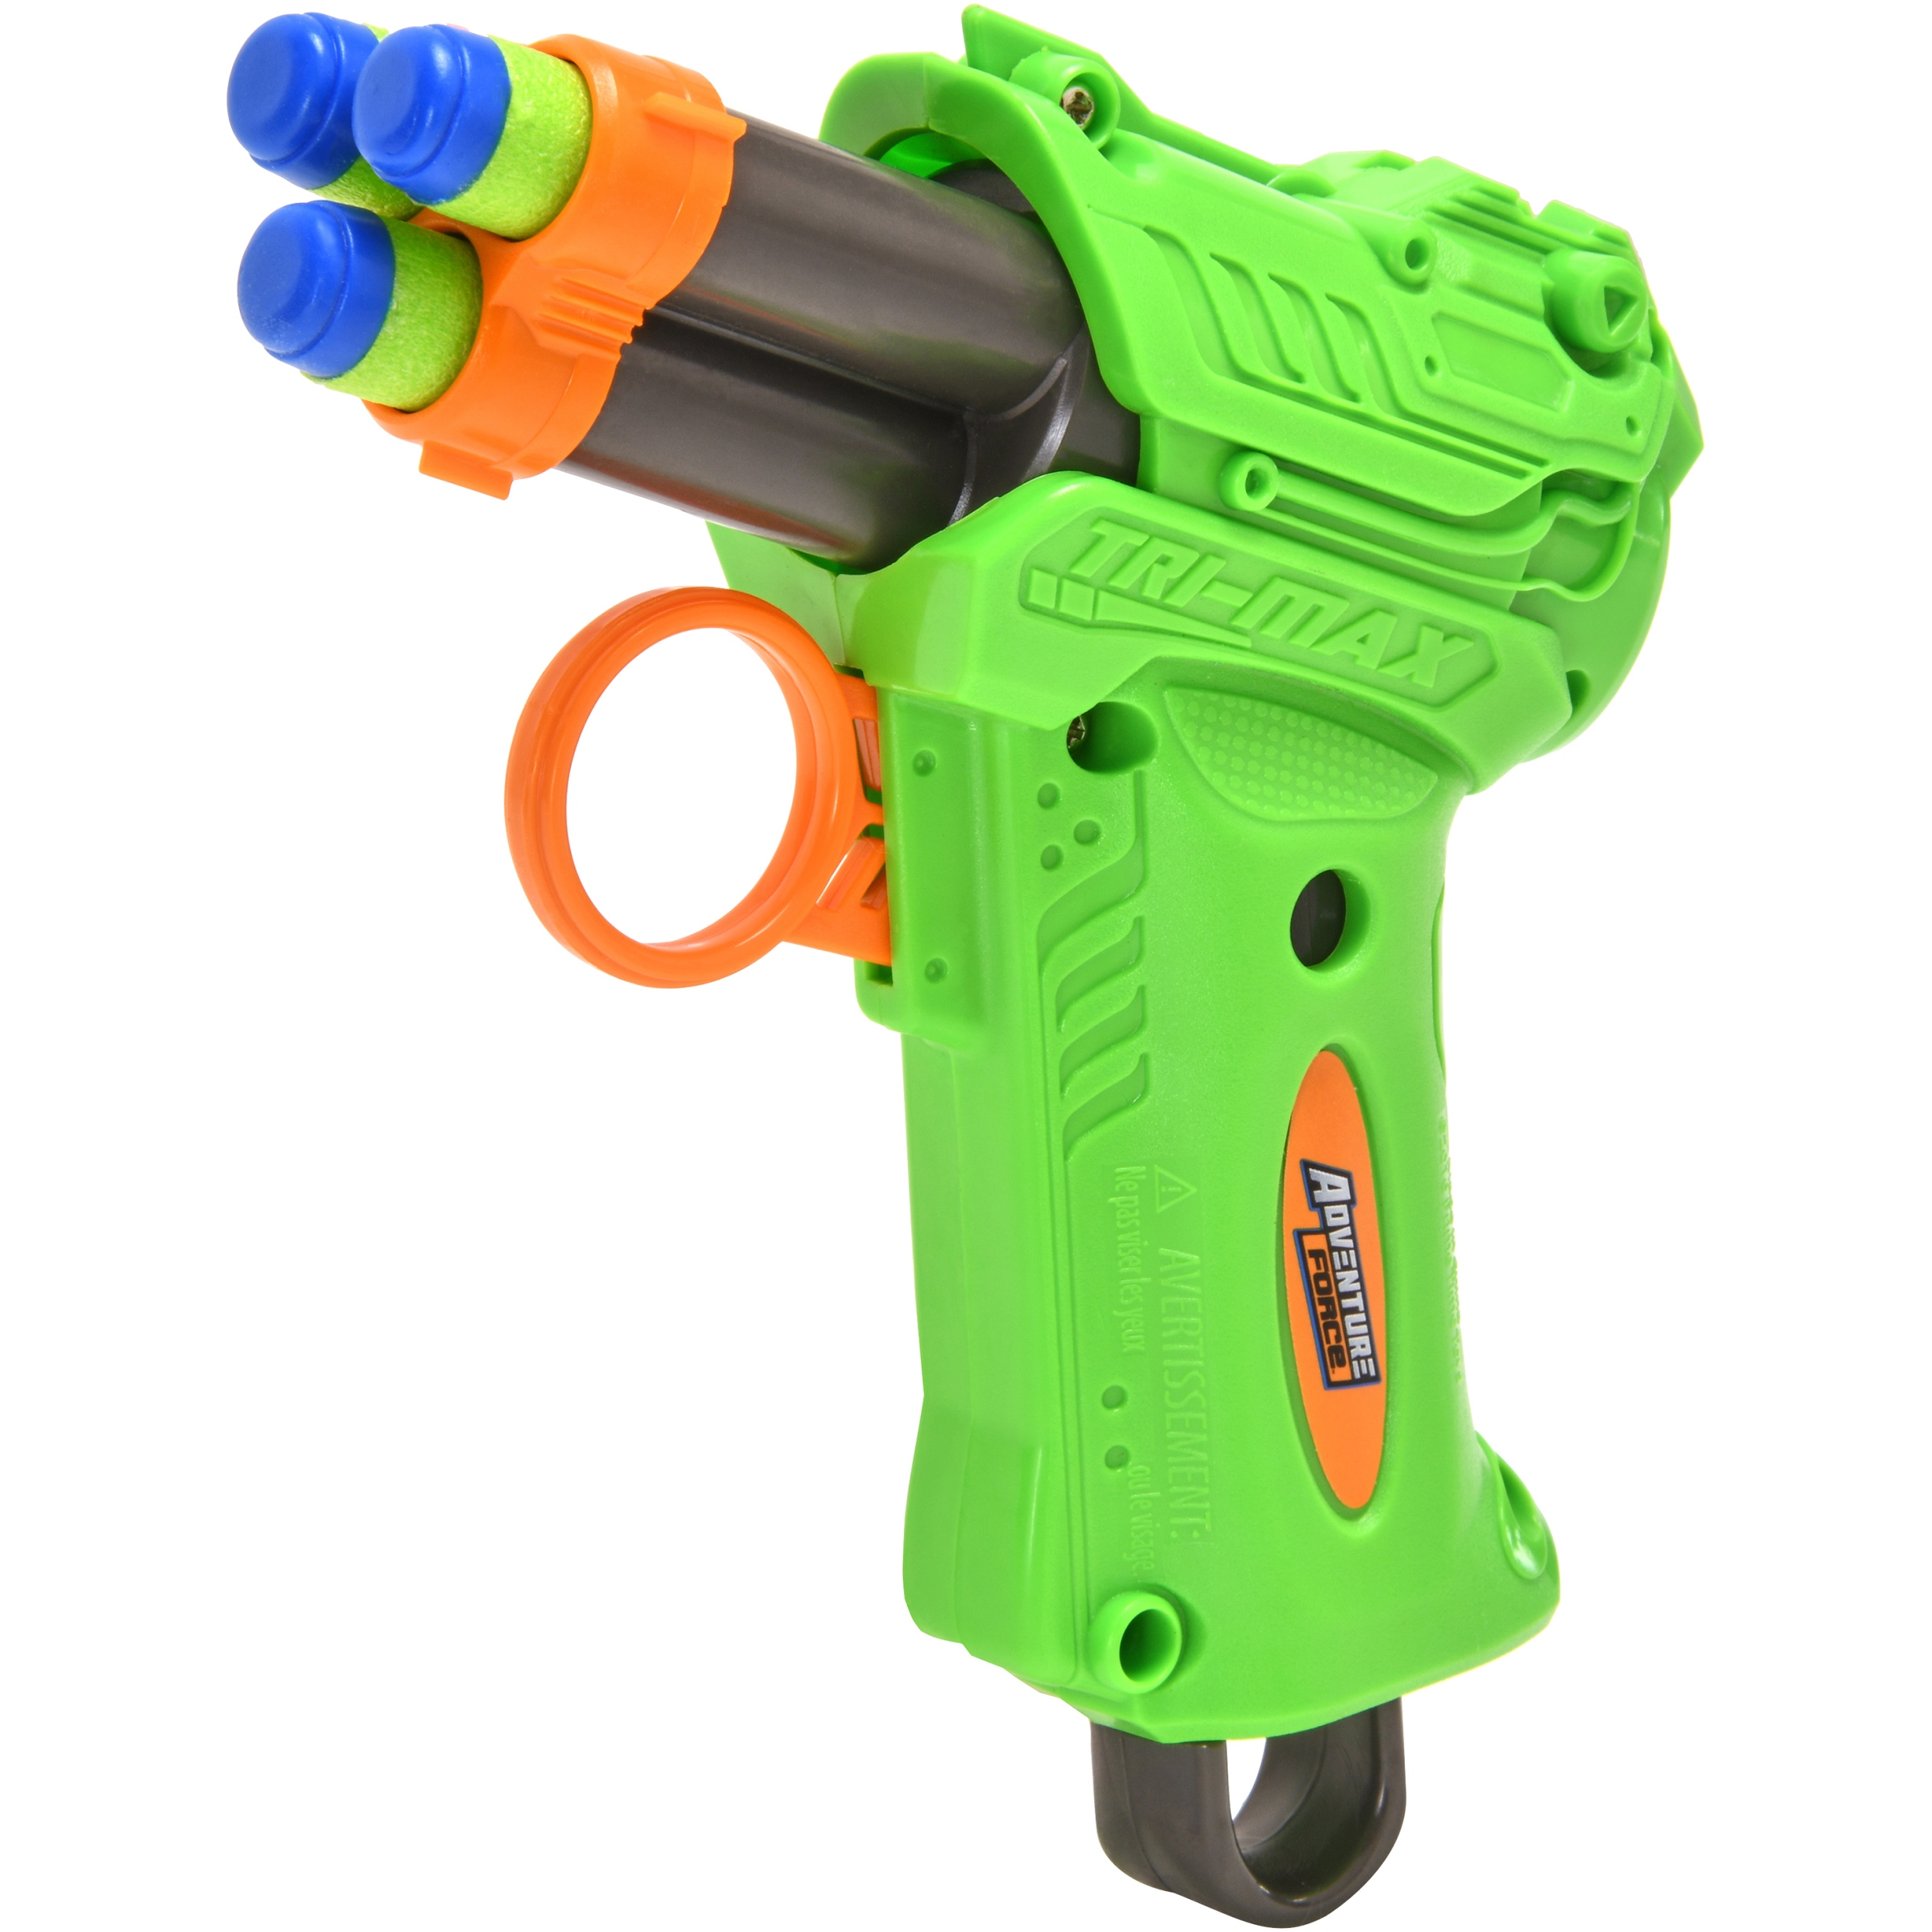 Adventure Force Tri-Max Auto-Advance Rotating Barrel Blaster, Green